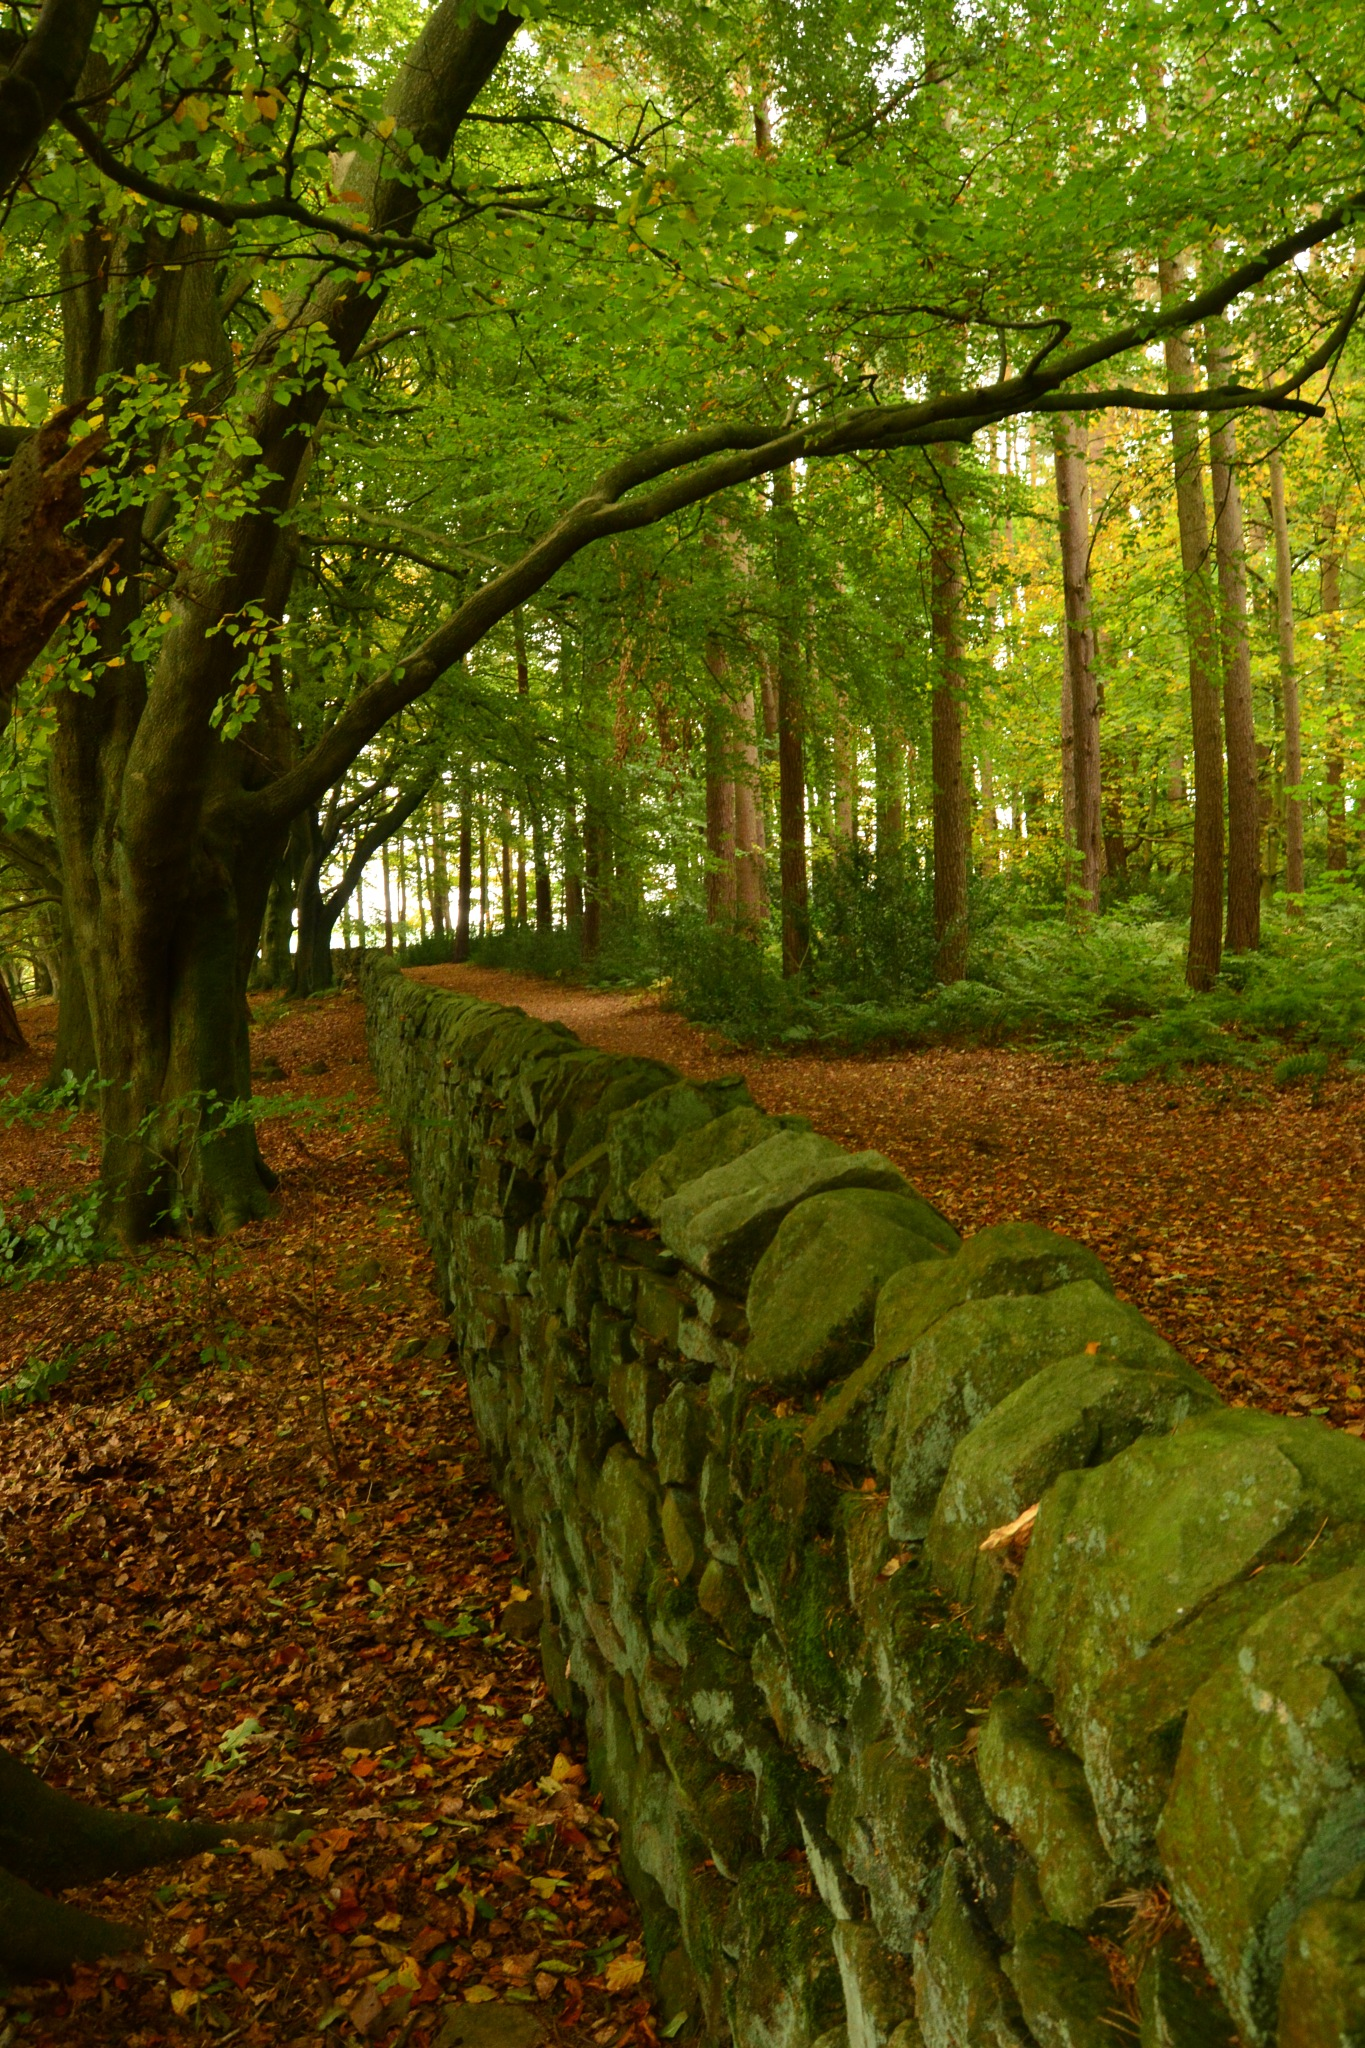 Dry Stone wall in the Wood in Autumn. by Andrew Longhurst